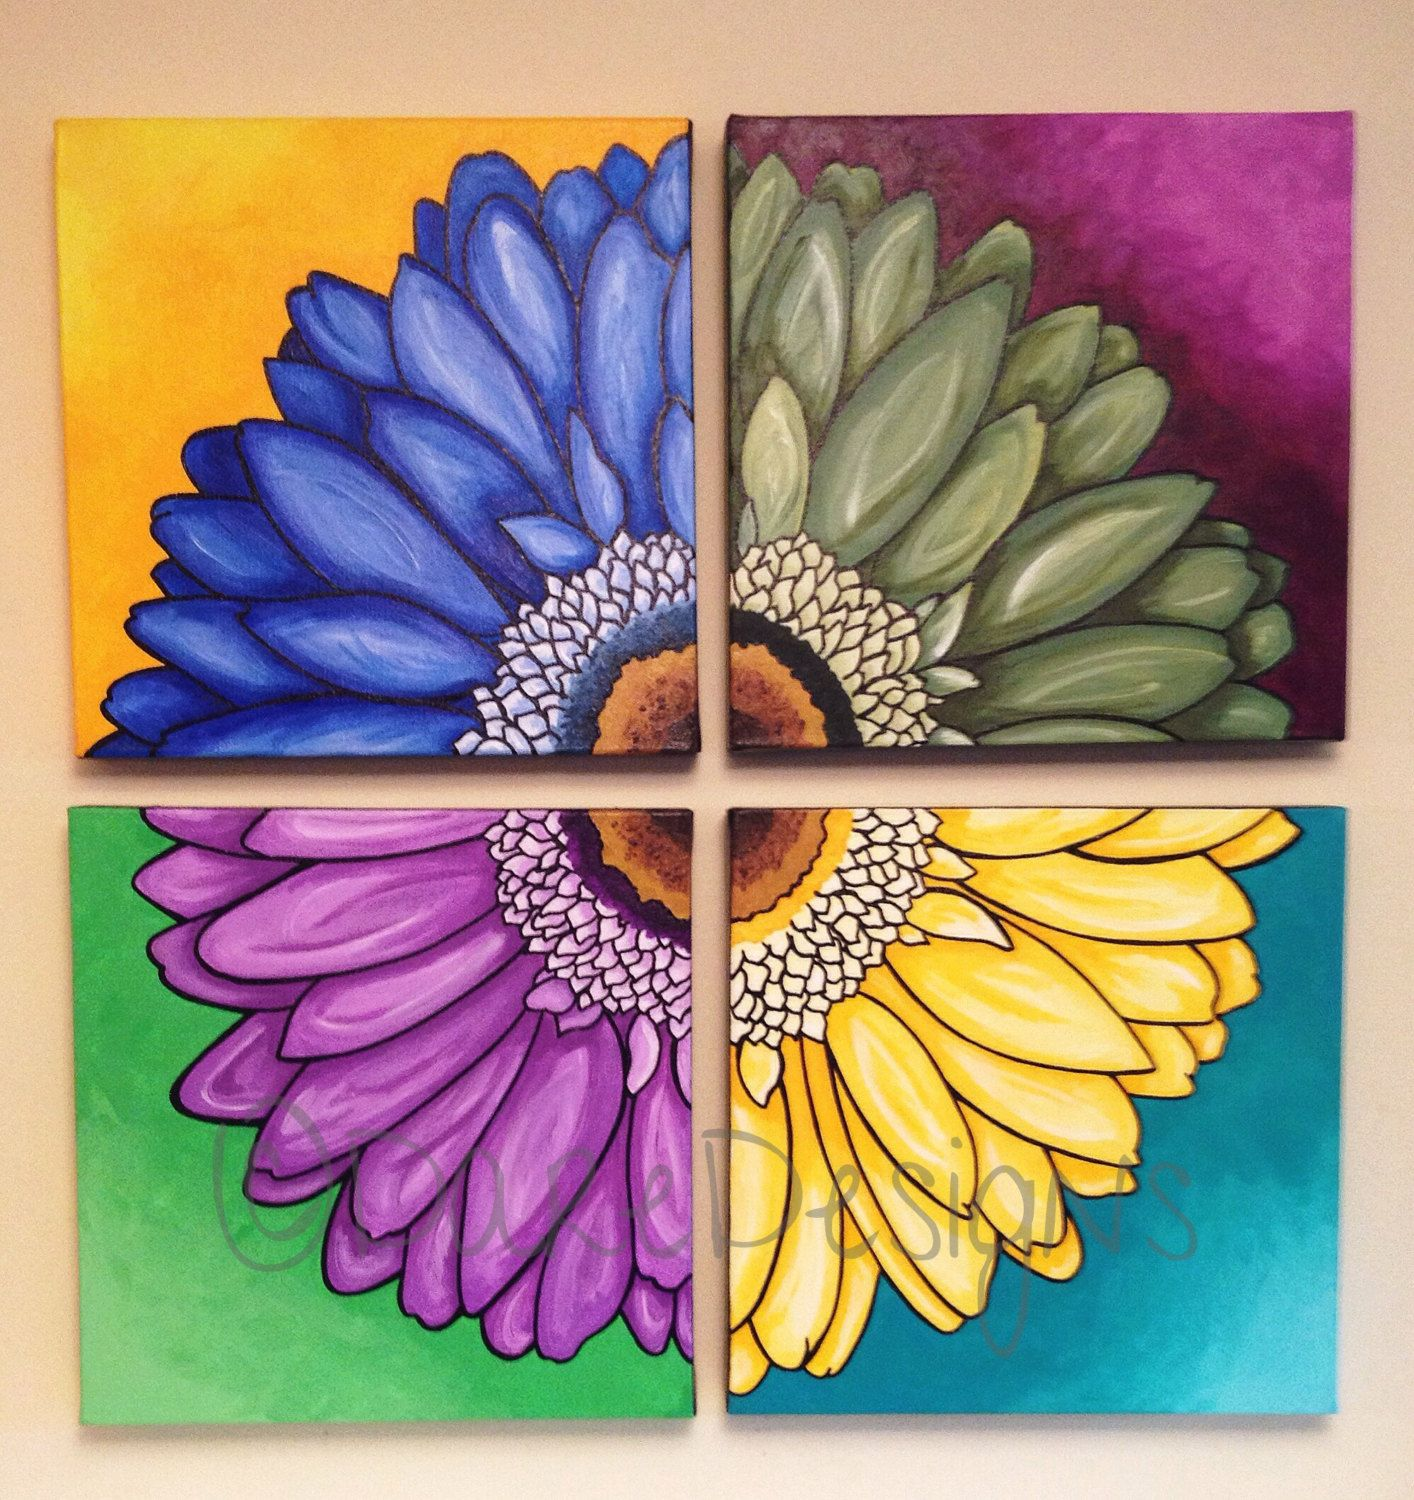 4 Piece Wall Art Acrylic Flower Painting Hand Painted Floral Etsy In 2021 Floral Painting Flower Painting Floral Artwork